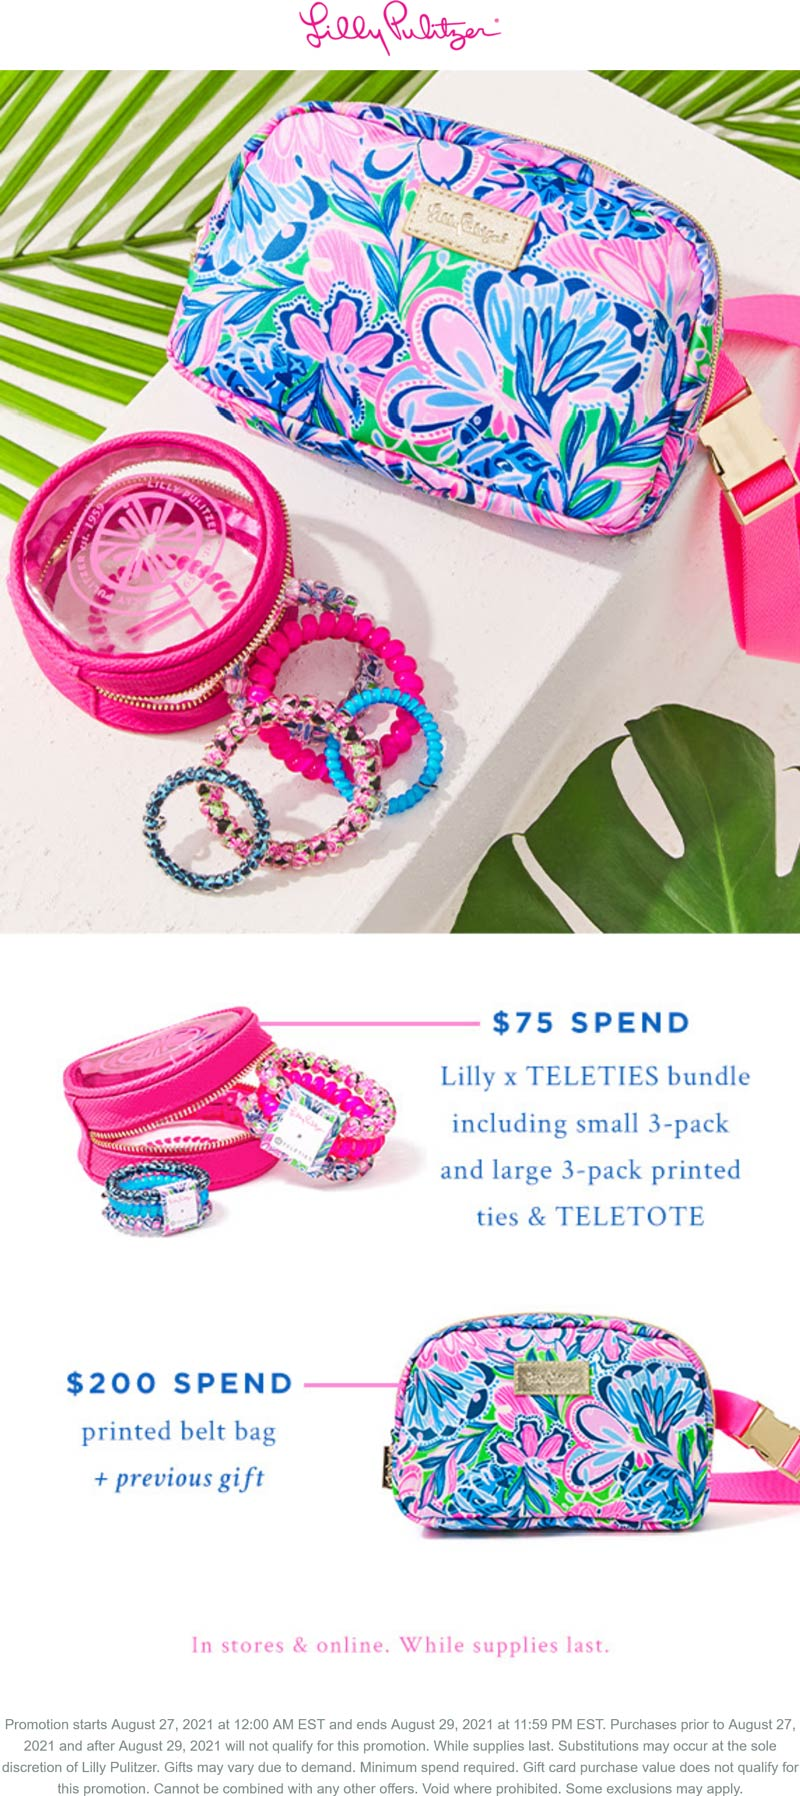 Lilly Pulitzer stores Coupon  Free 6pk hair ties & belt bag with $200 spent at Lilly Pulitzer, ditto online #lillypulitzer